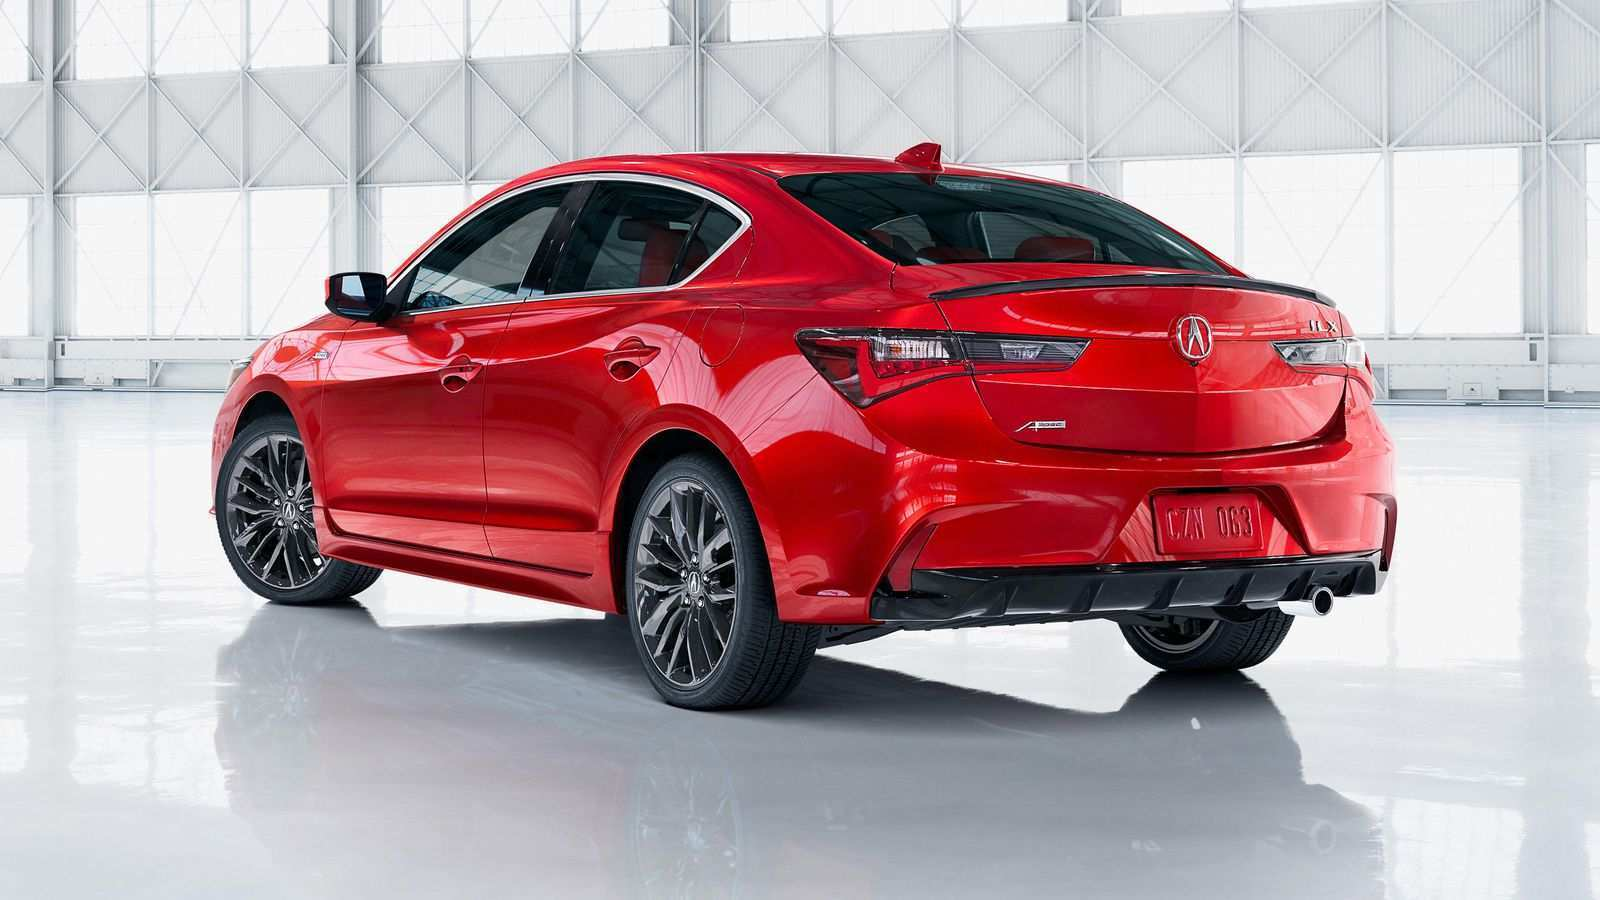 99 The 2019 Acura Ilx Redesign Review for 2019 Acura Ilx Redesign